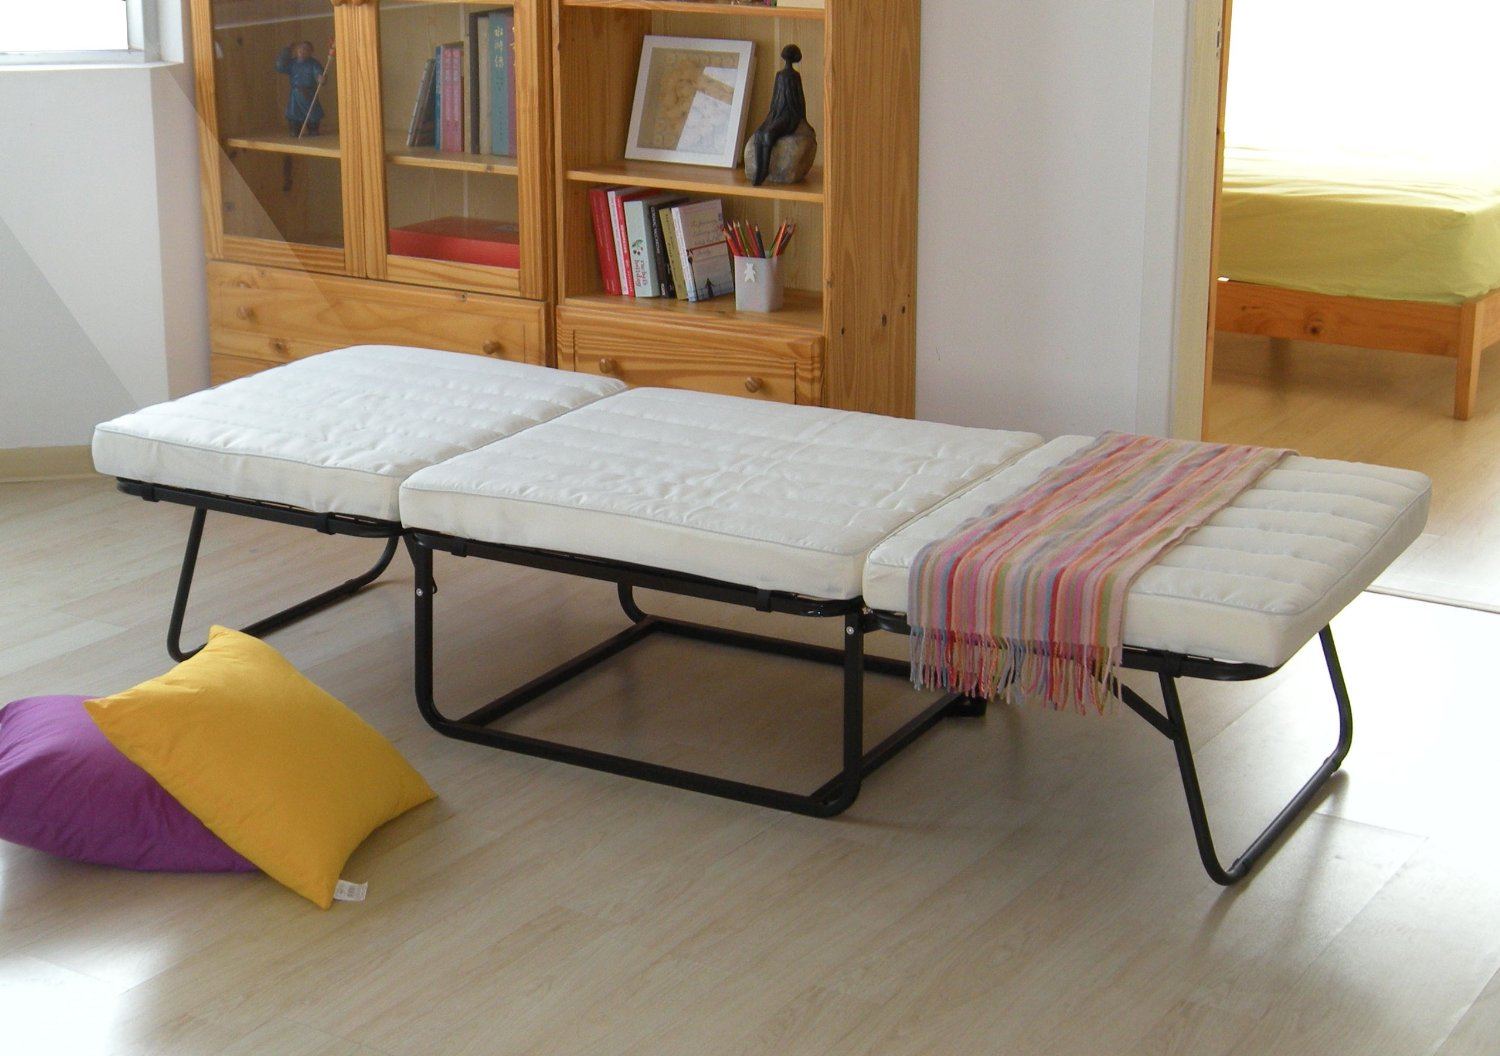 IKEA Guest Bed: Easy and Practical Way to Welcome Your ...